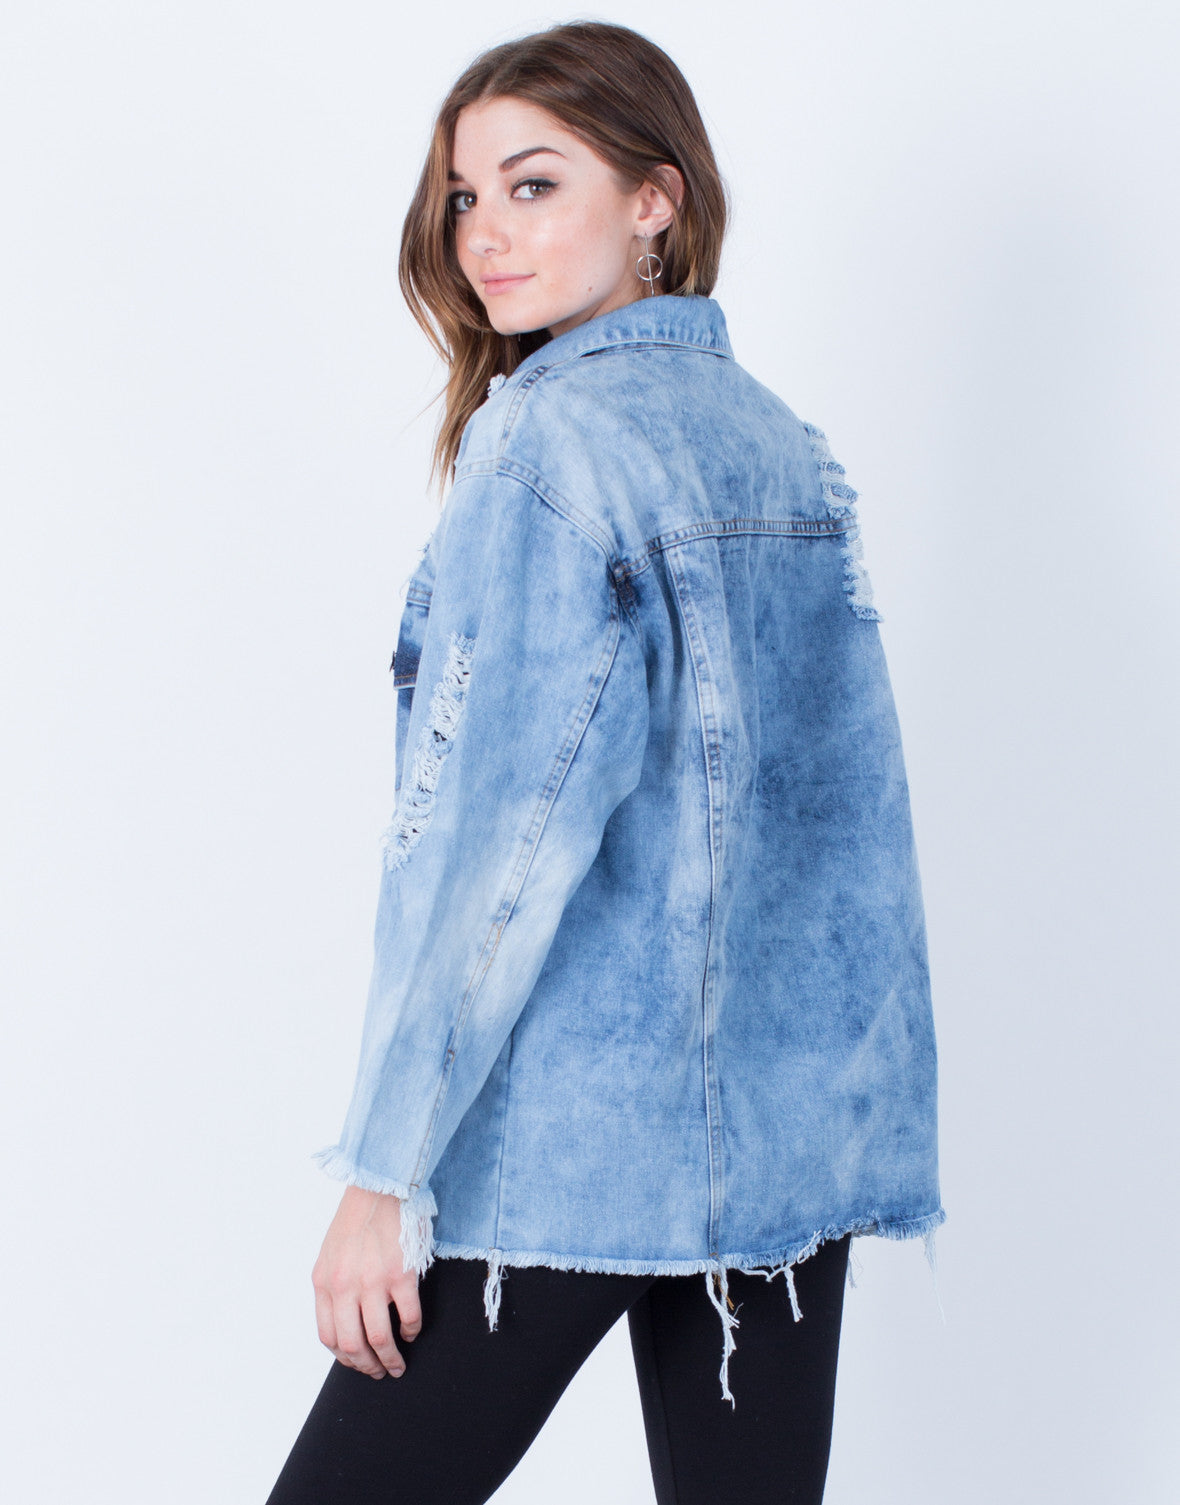 Back View of In a Daze Denim Jacket